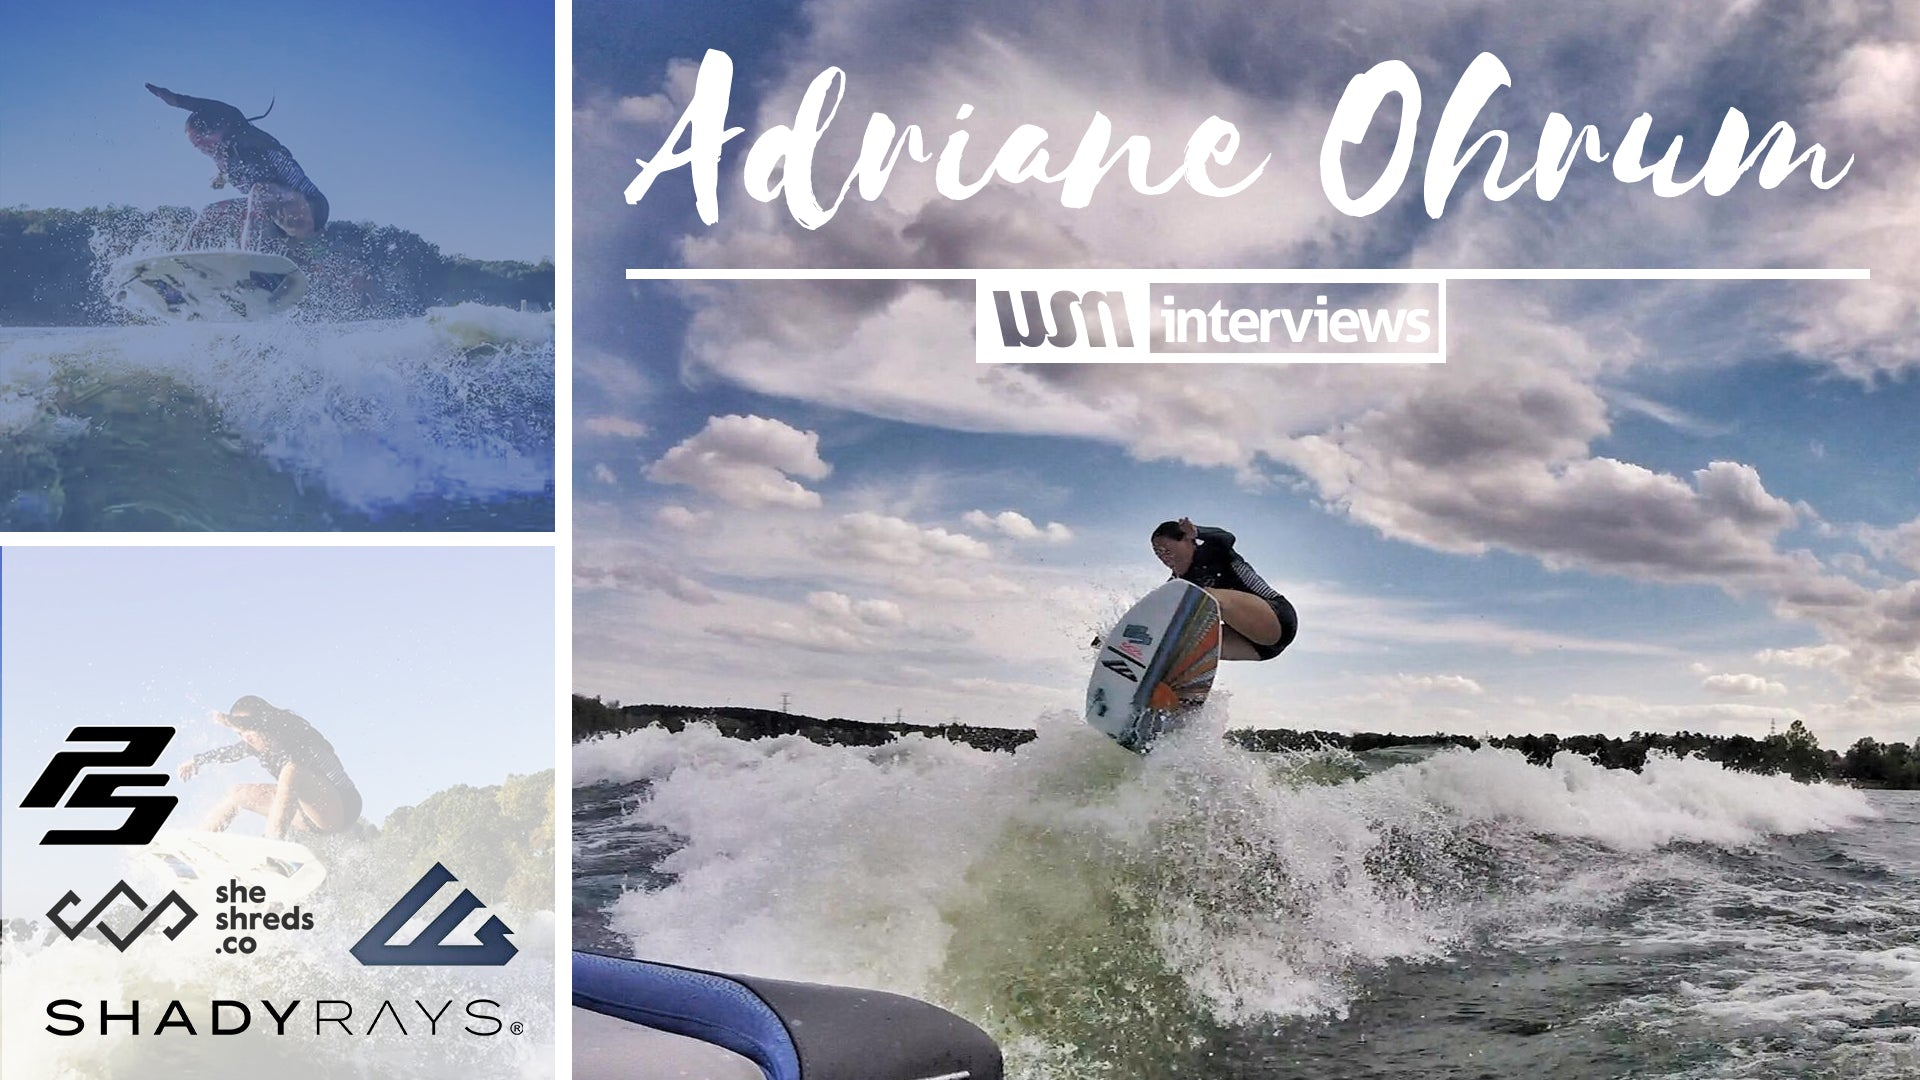 Ambassador Adriane Ohrum Interviewed by Wakesurf Media